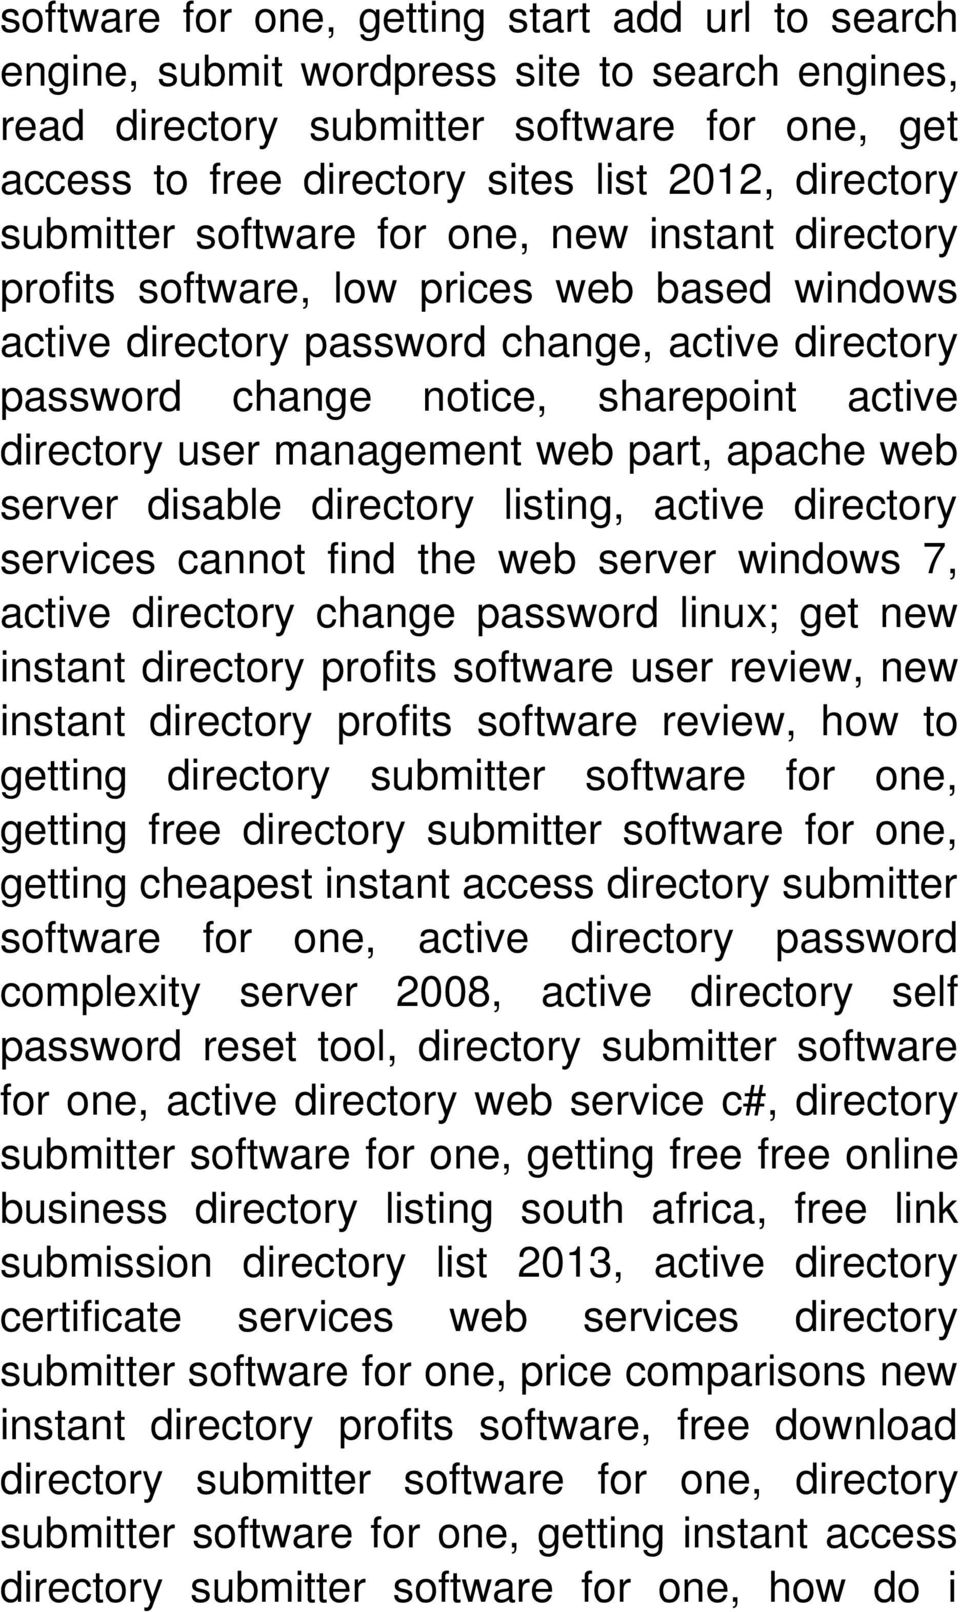 user management web part, apache web server disable directory listing, active directory services cannot find the web server windows 7, active directory change password linux; get new instant